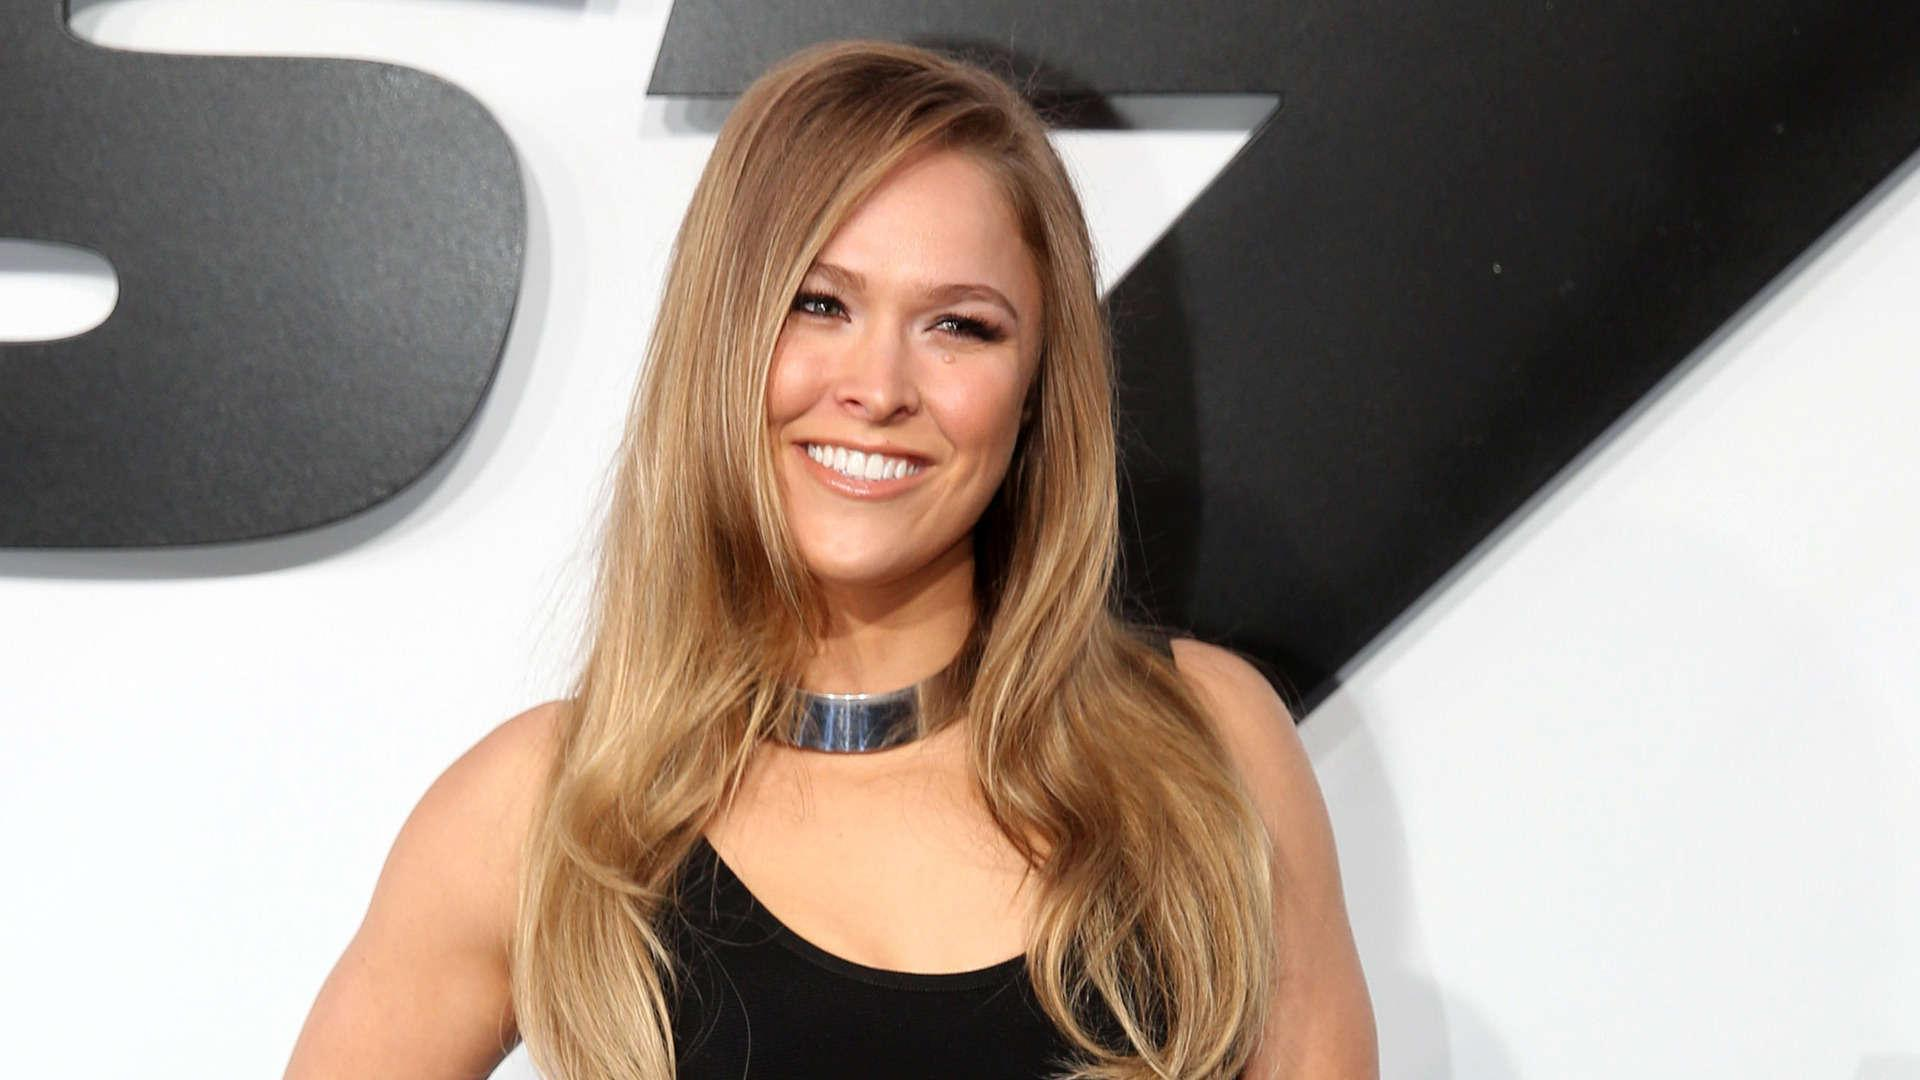 Ronda Rousey Iphone Wallpapers